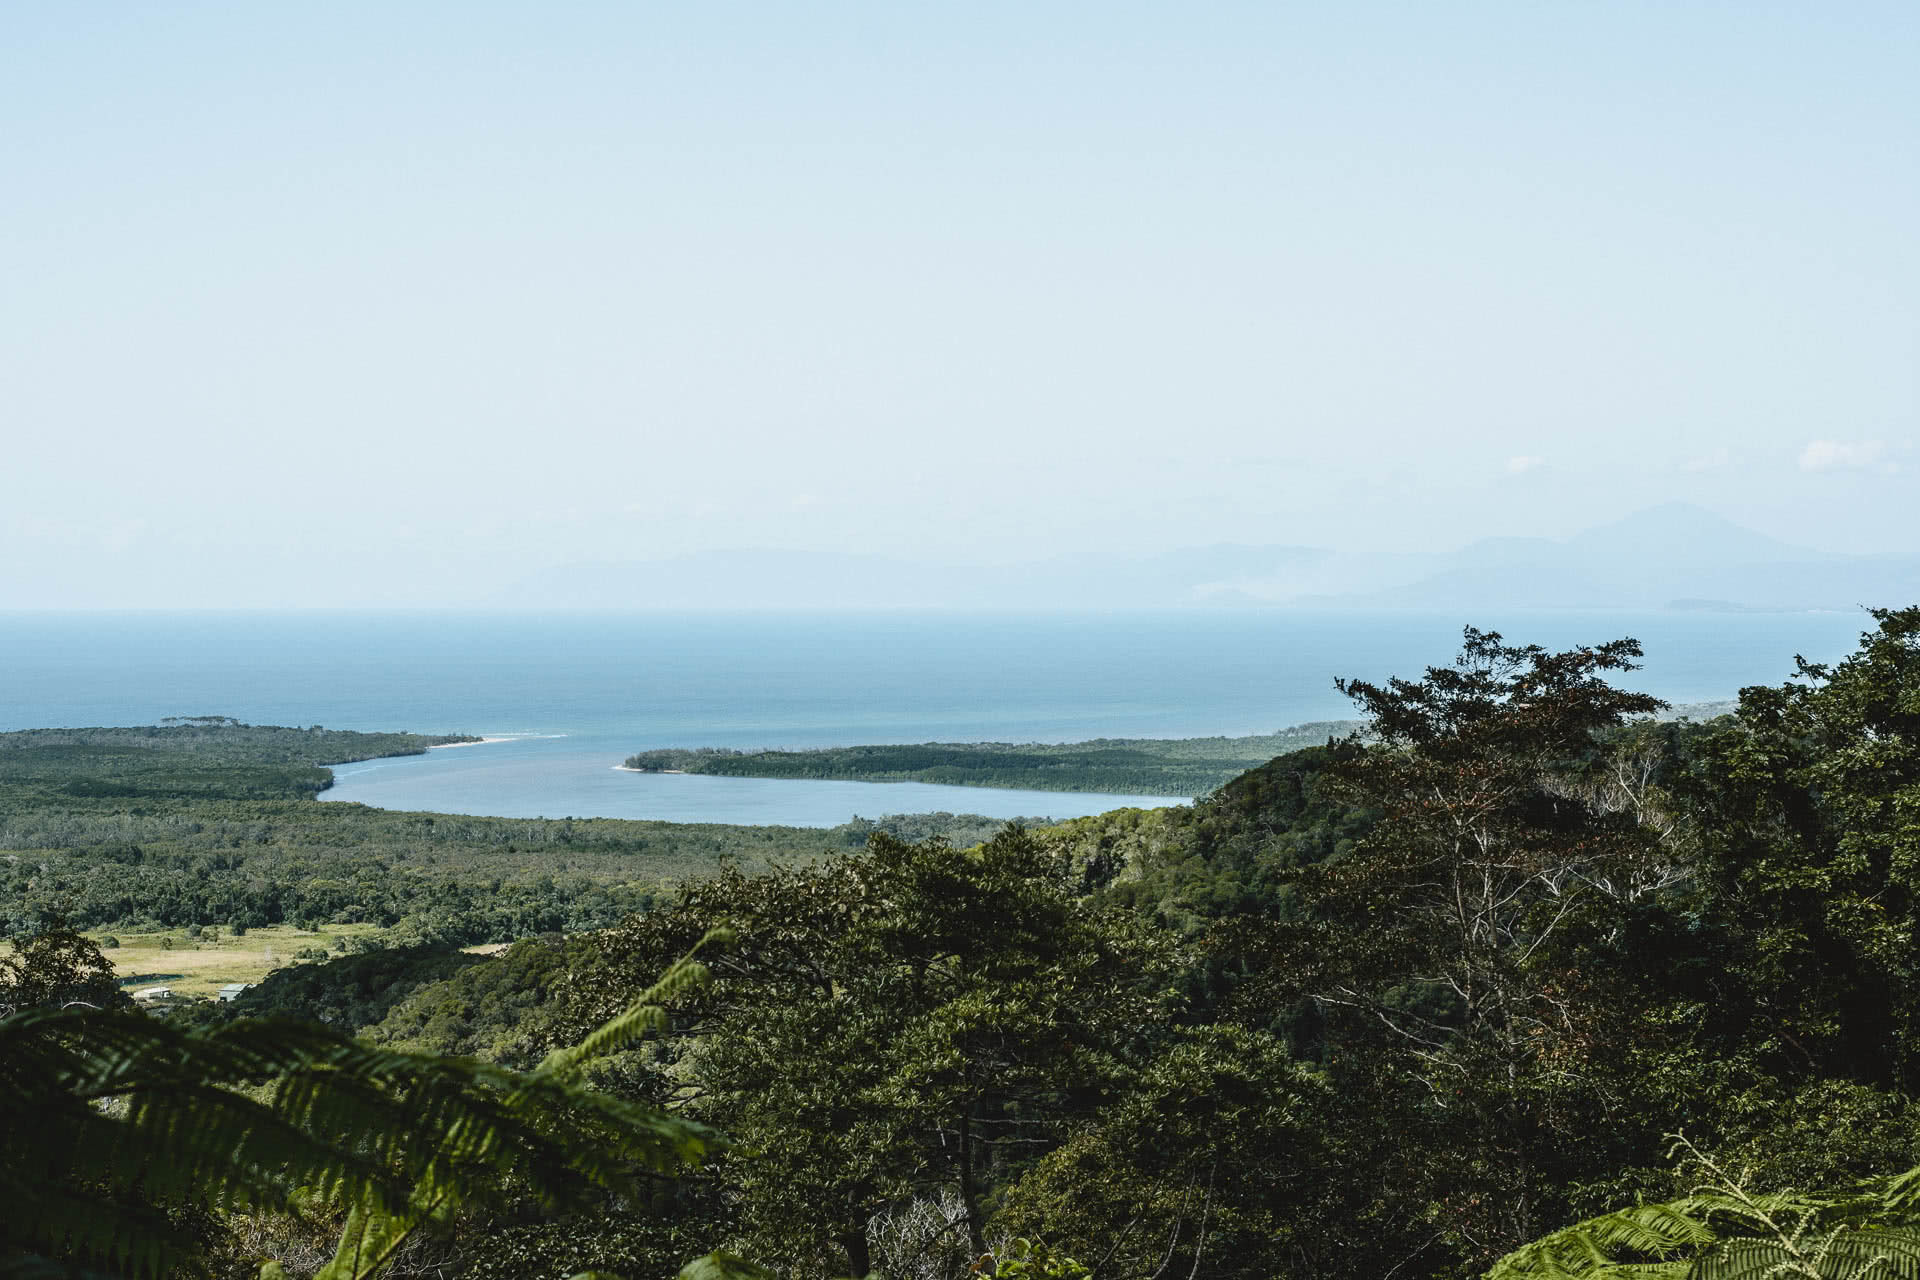 Mount Alexandra Lookout, Jaime wilson, Great Barrier Reef Drive – This Road Trip North From Cairns Has It All, Tropical North Queensland